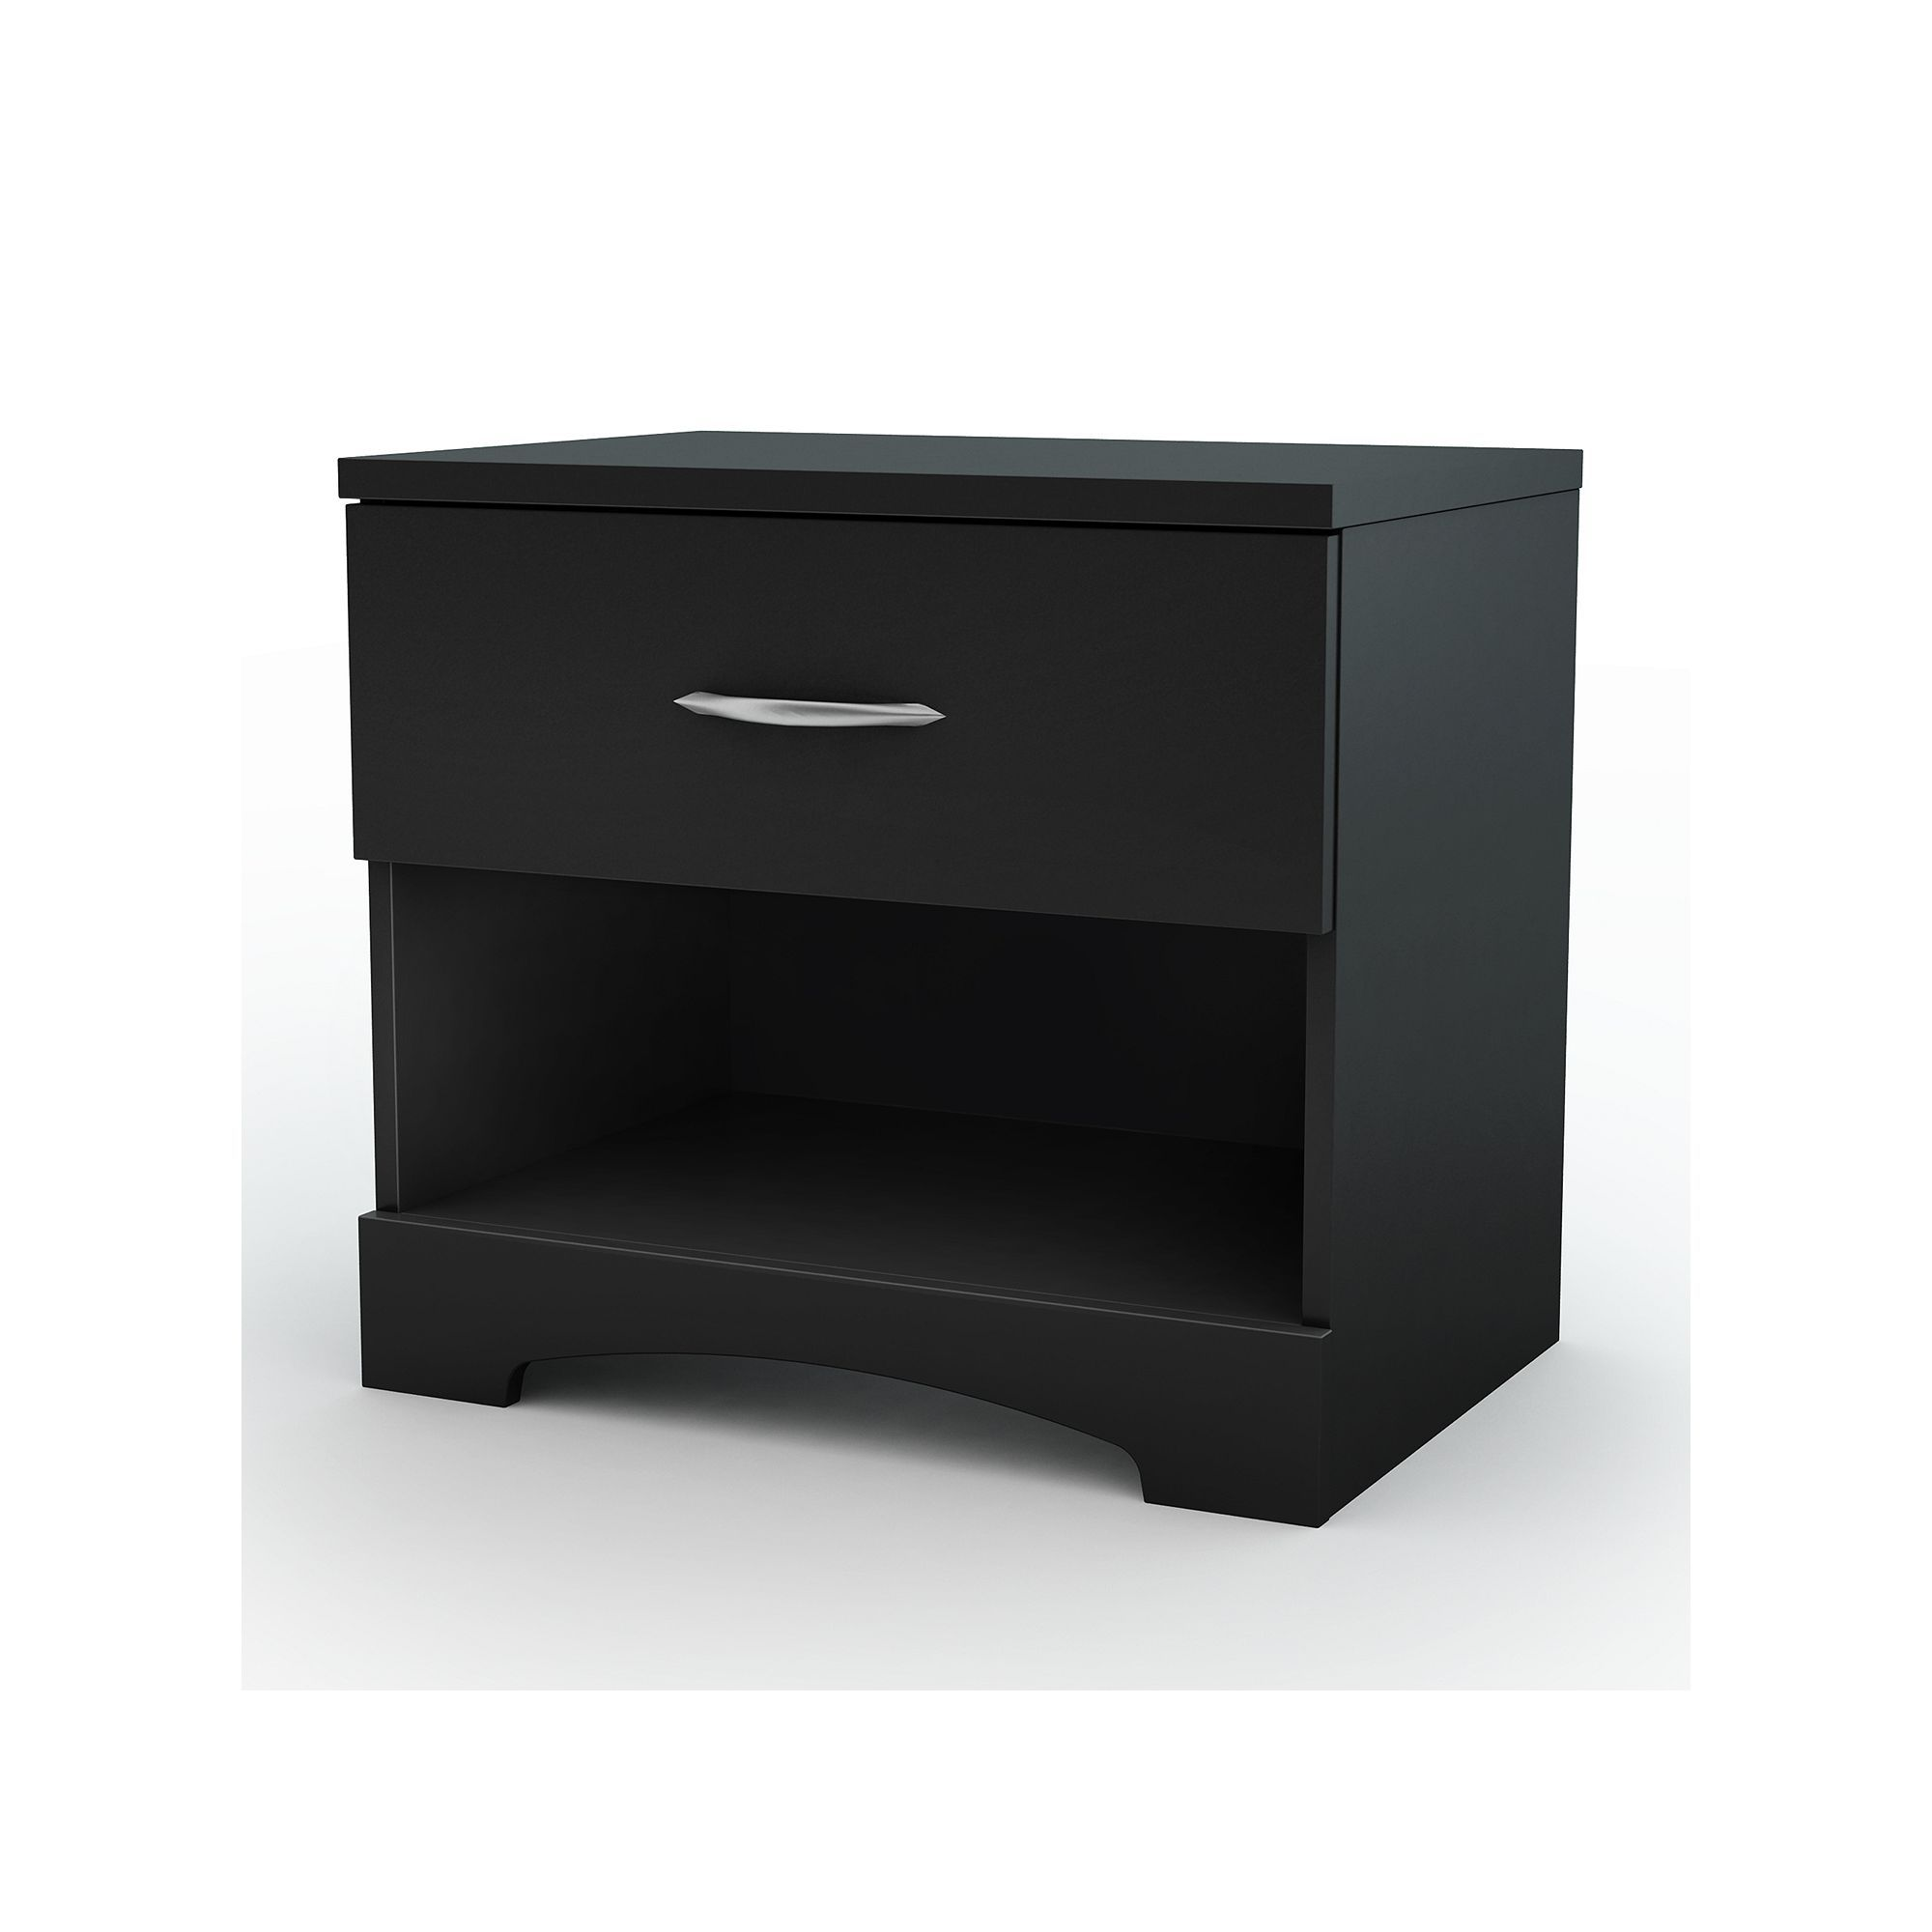 6 star master bedroom  South Shore Black Contemporary Nightstand  Products